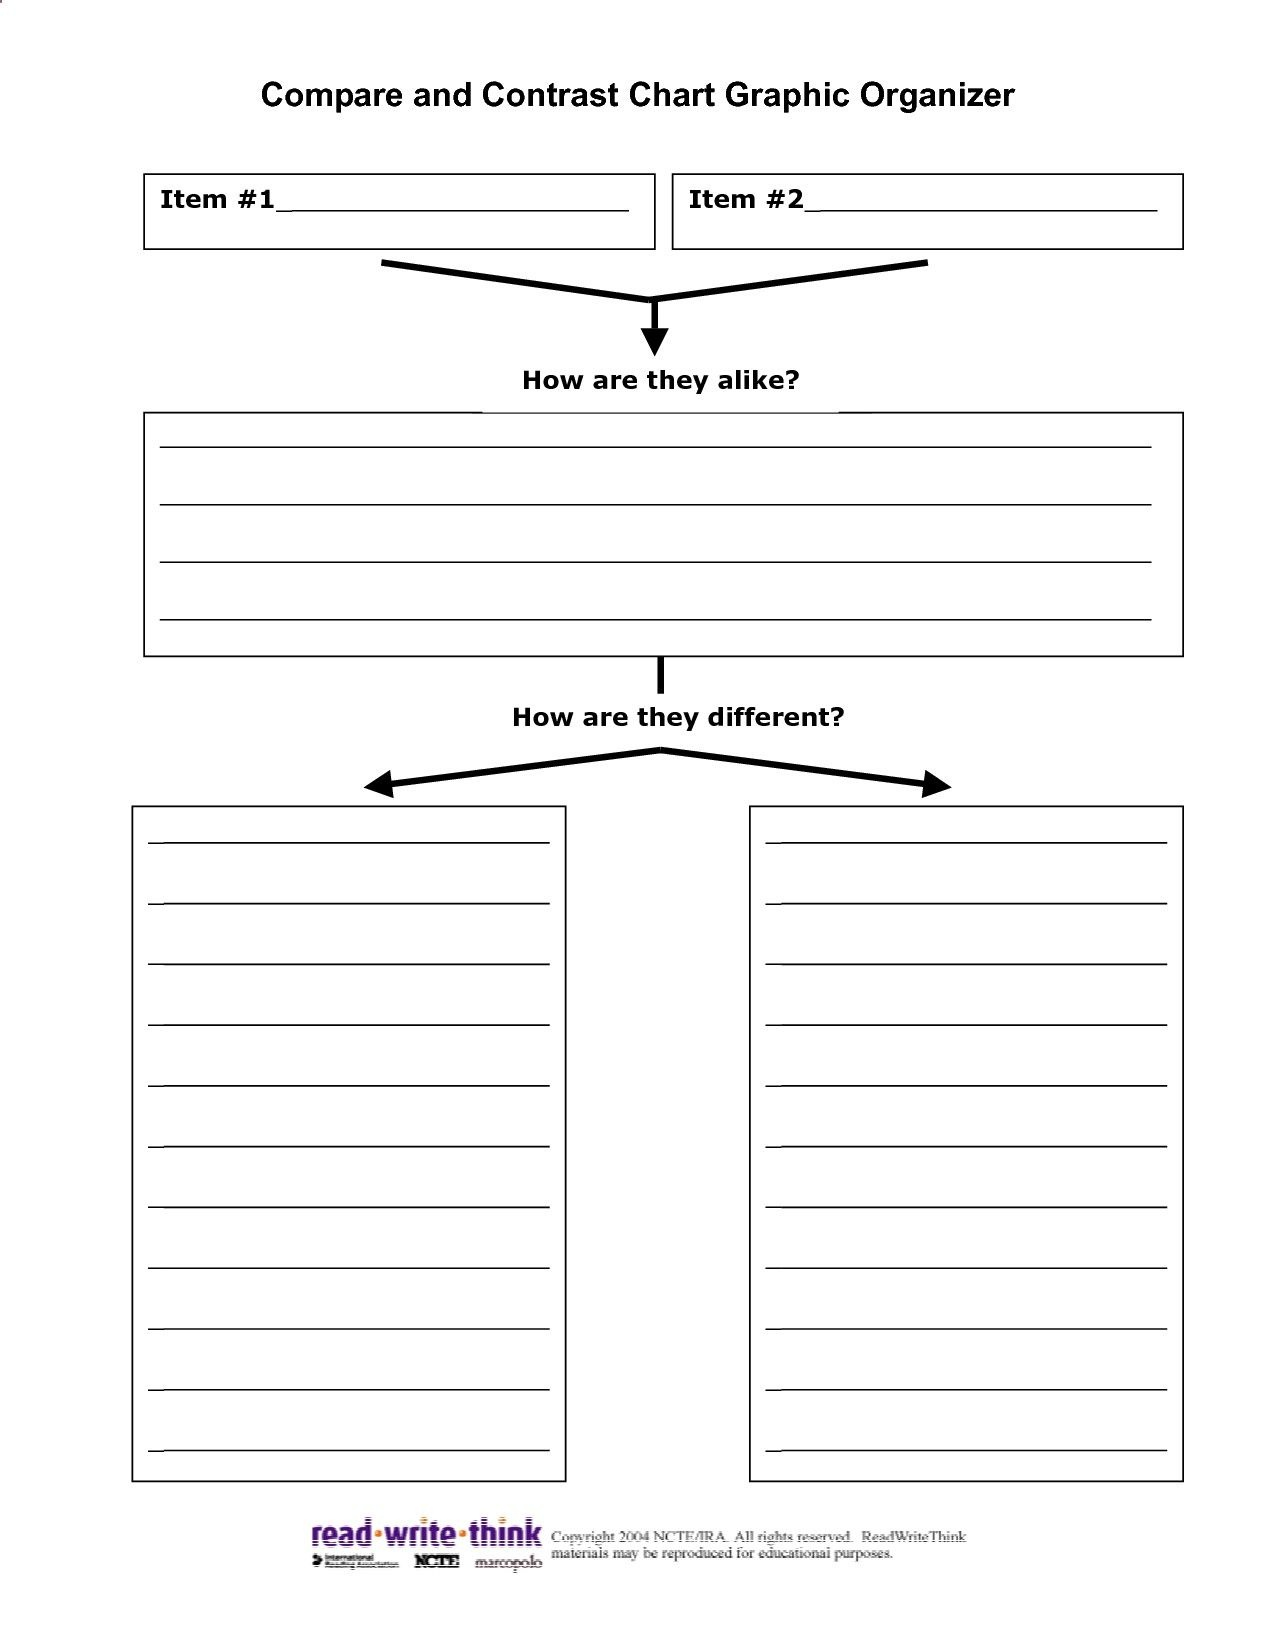 Graphic Organizer For A Compare/contrast Essay | Write Paper Service - Free Printable Compare And Contrast Graphic Organizer